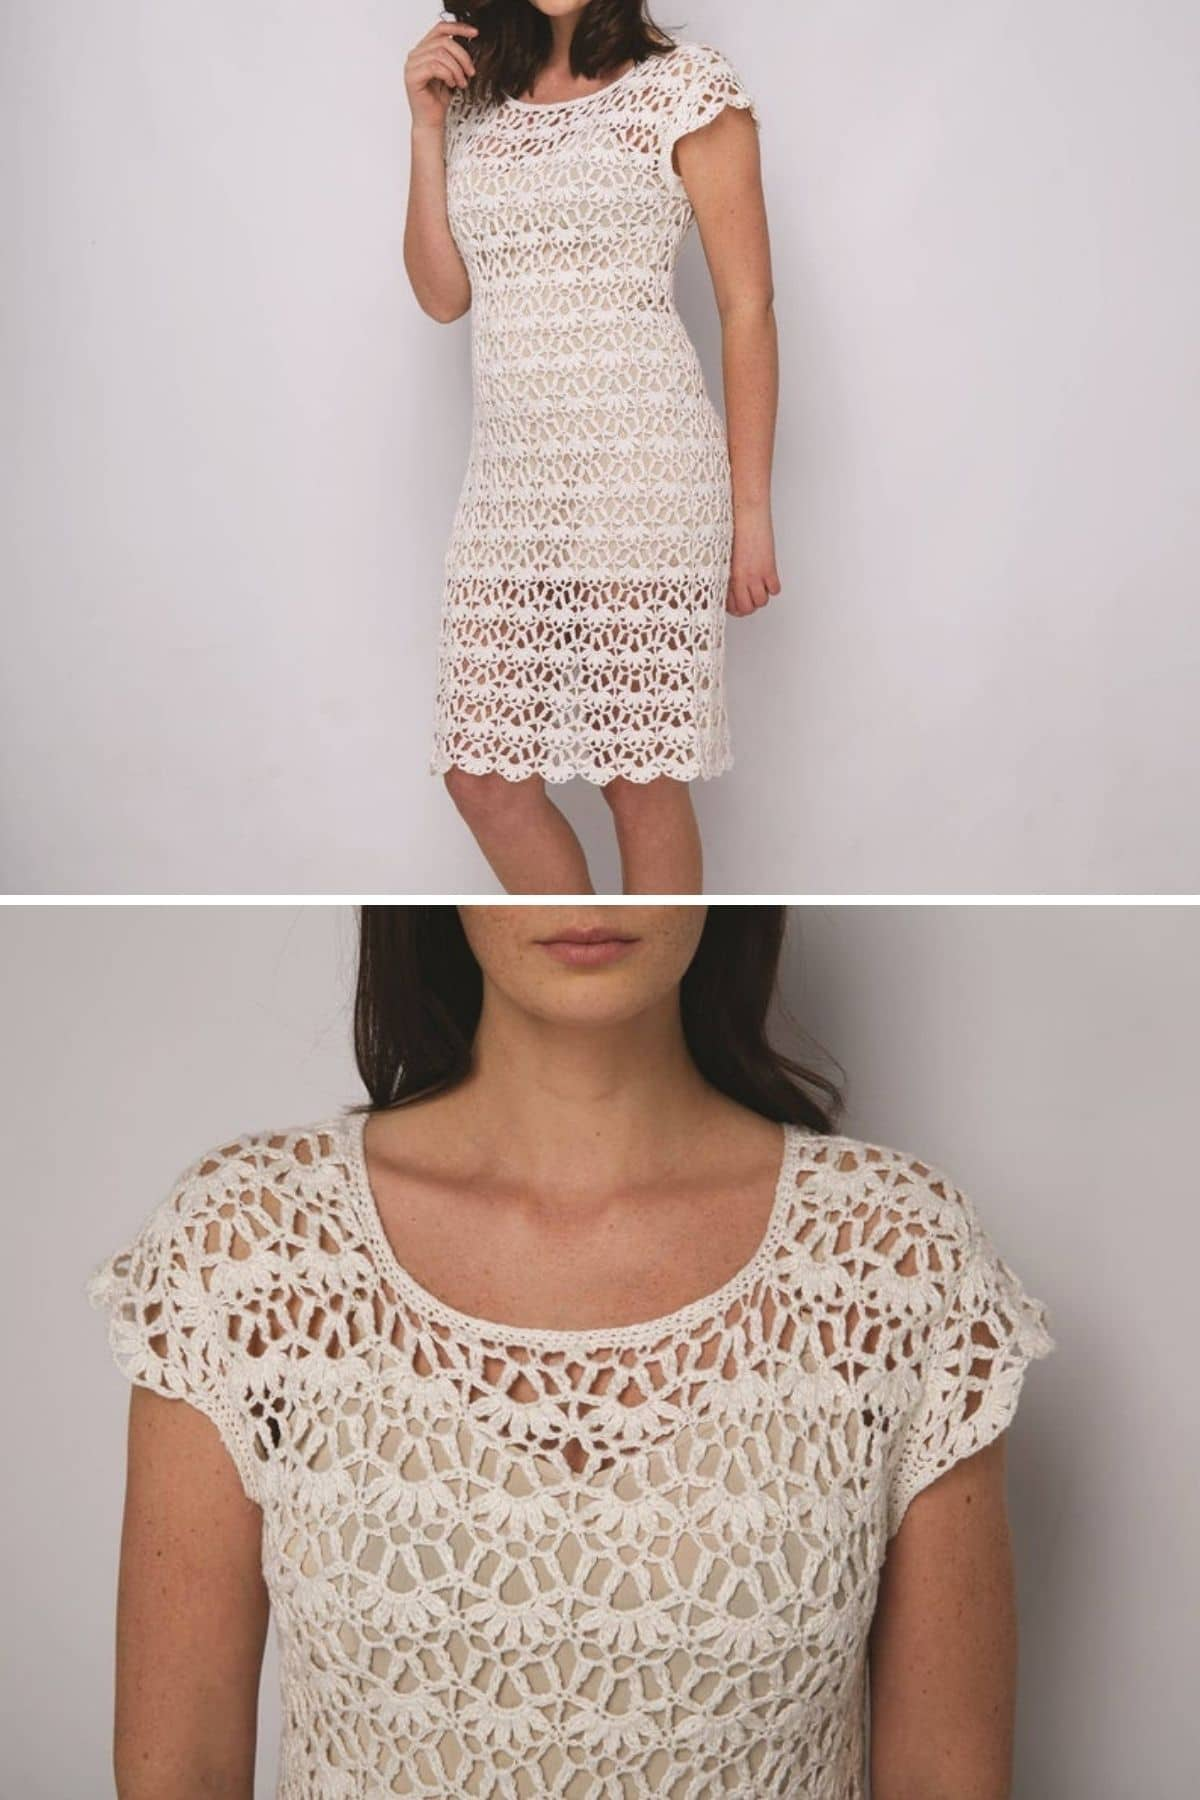 White lace dress collage